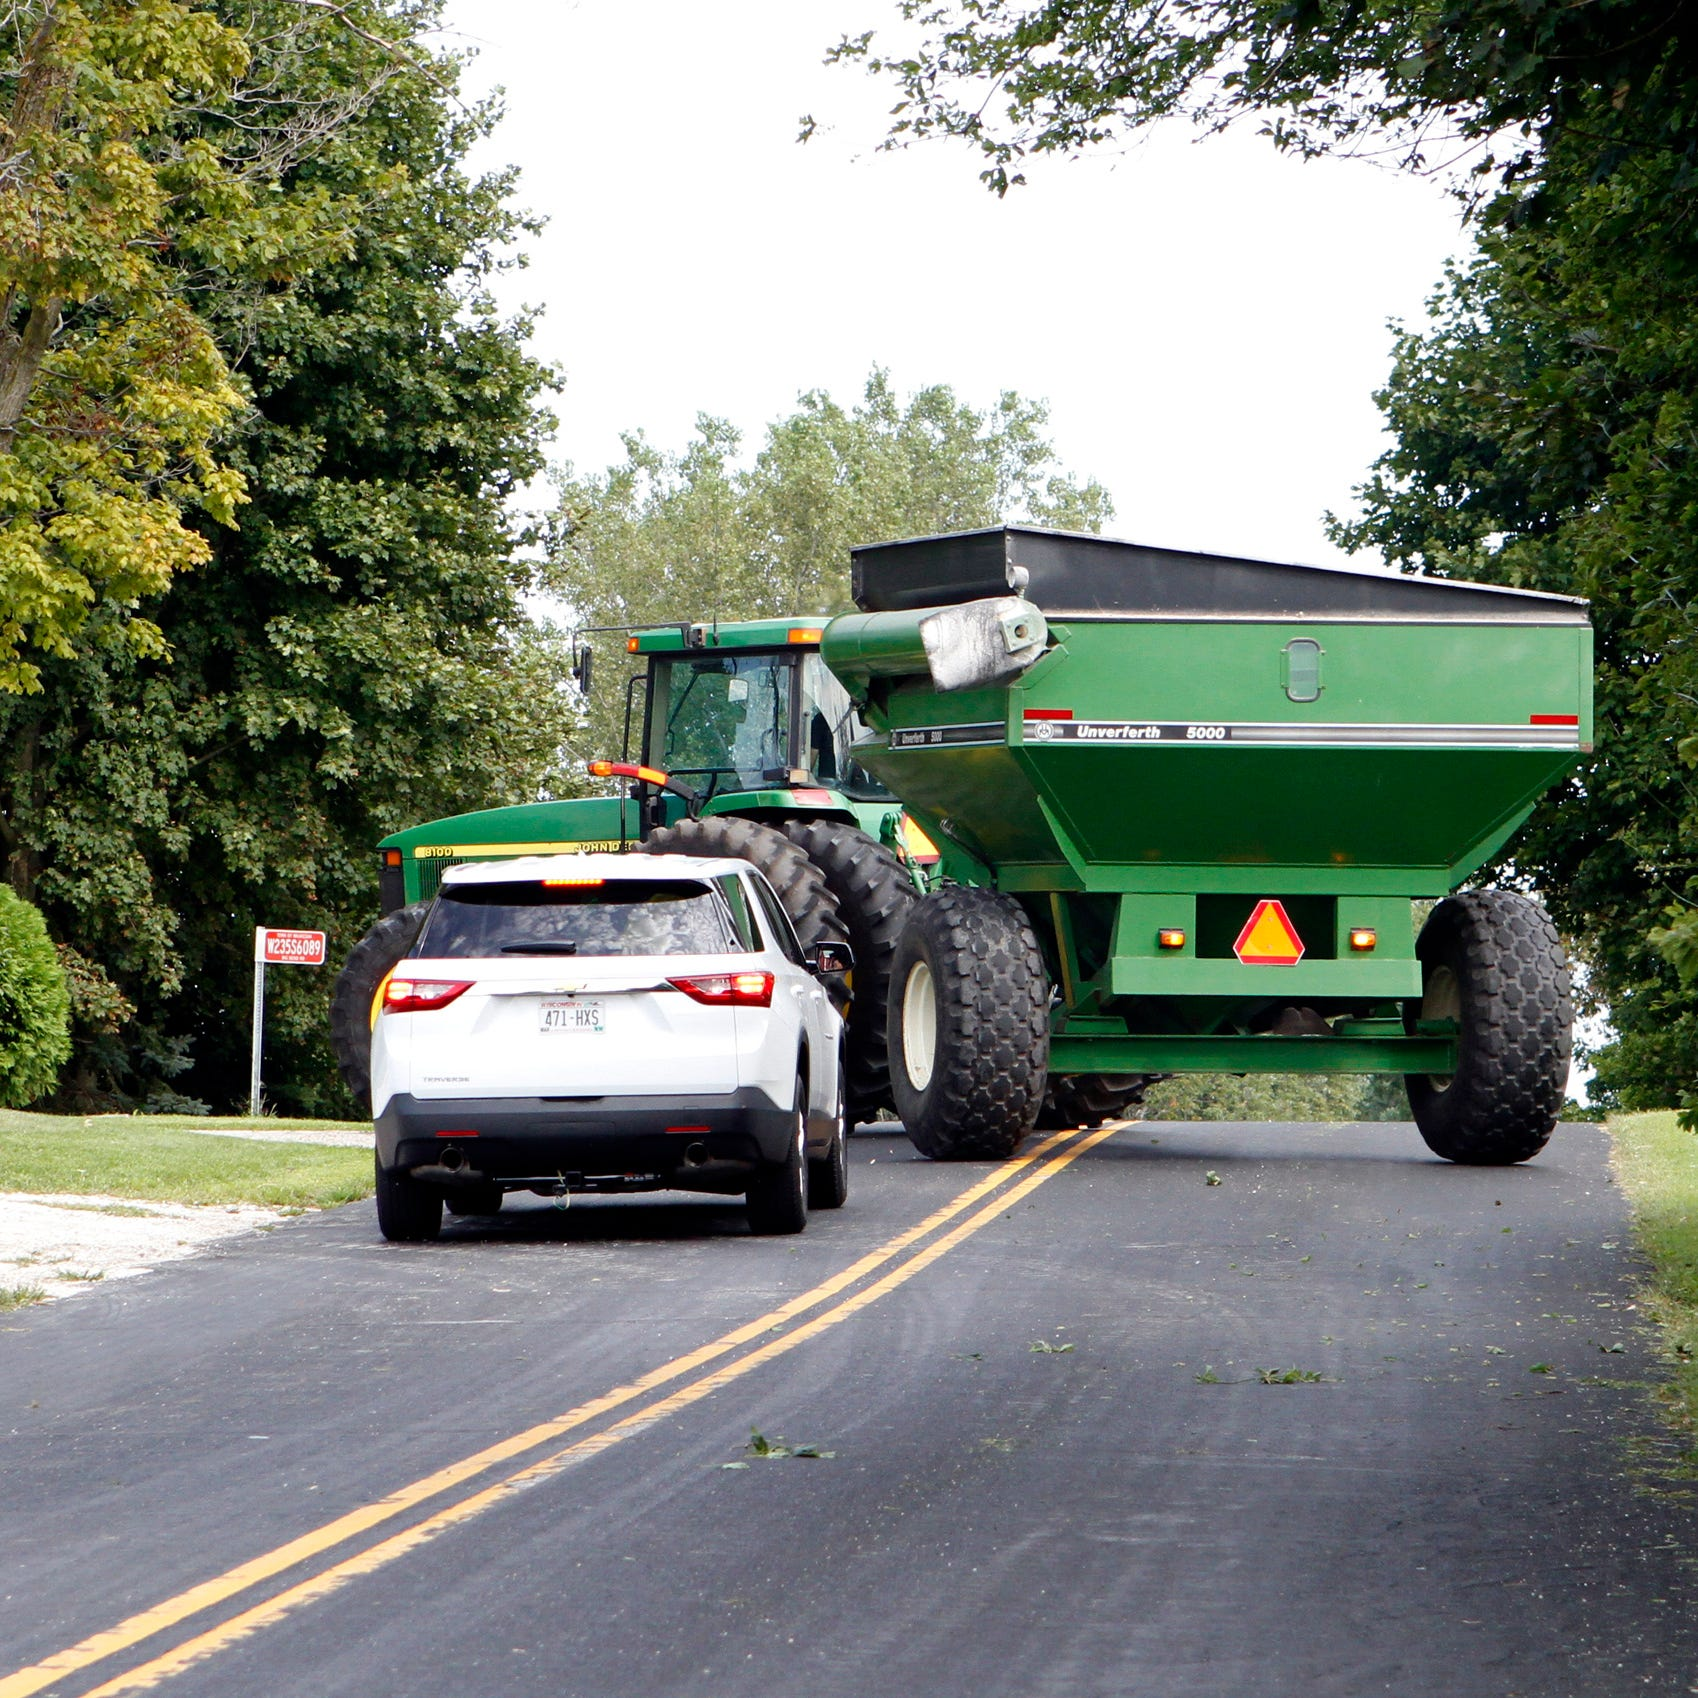 Harvest time: Time for farmers, motorists to work together and keep roads safe